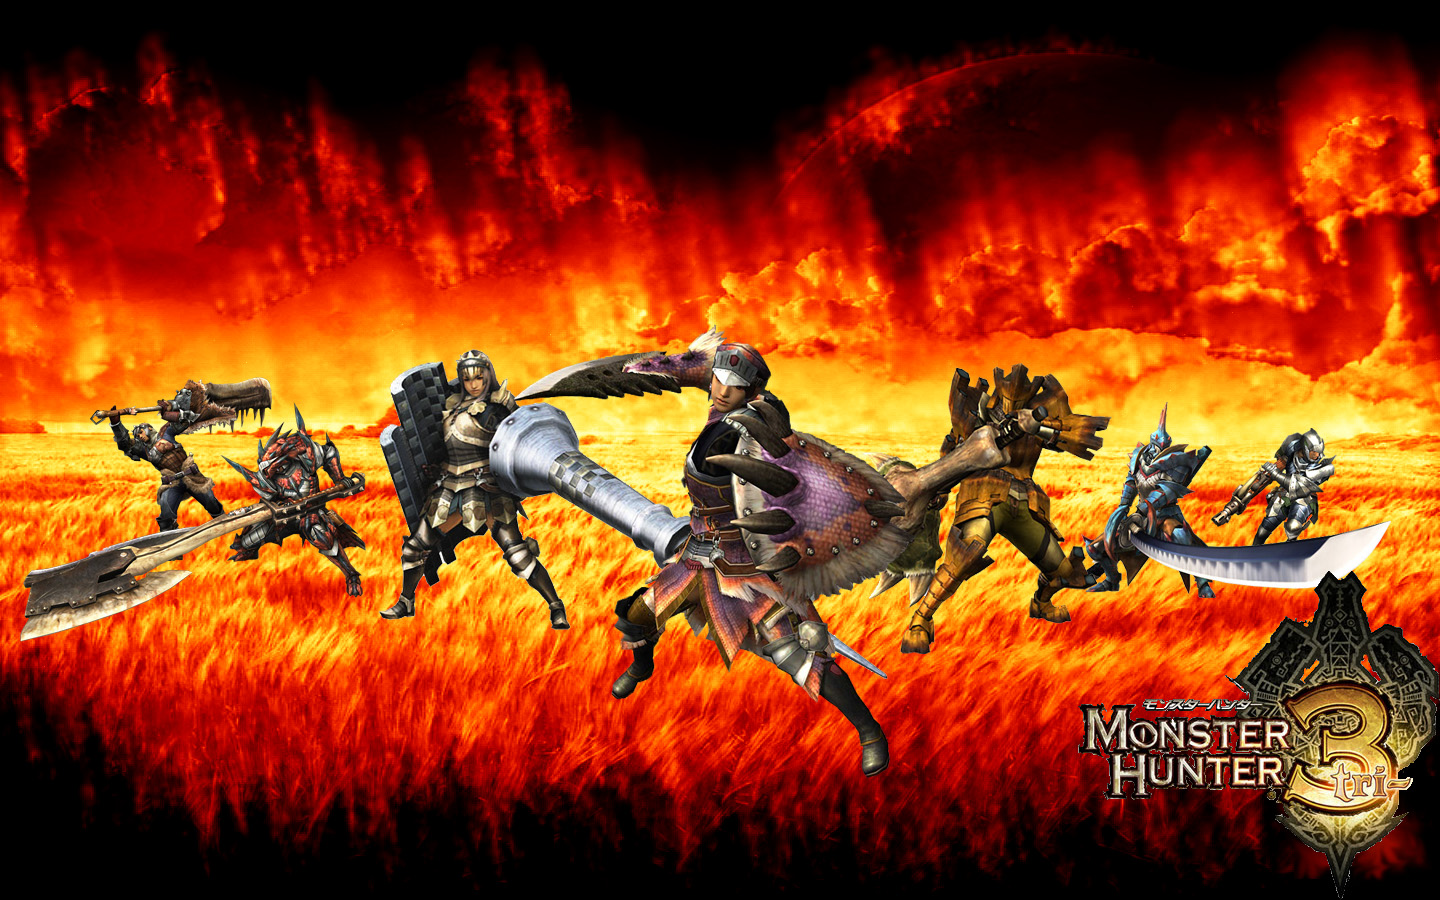 http://4.bp.blogspot.com/-b5nB8bvO5Kk/TcV9WNJkoYI/AAAAAAAAADk/kJfdhyGMYKc/s1600/monster_hunter_tri_wallpaper_by_spartan9053-d39e358.jpg